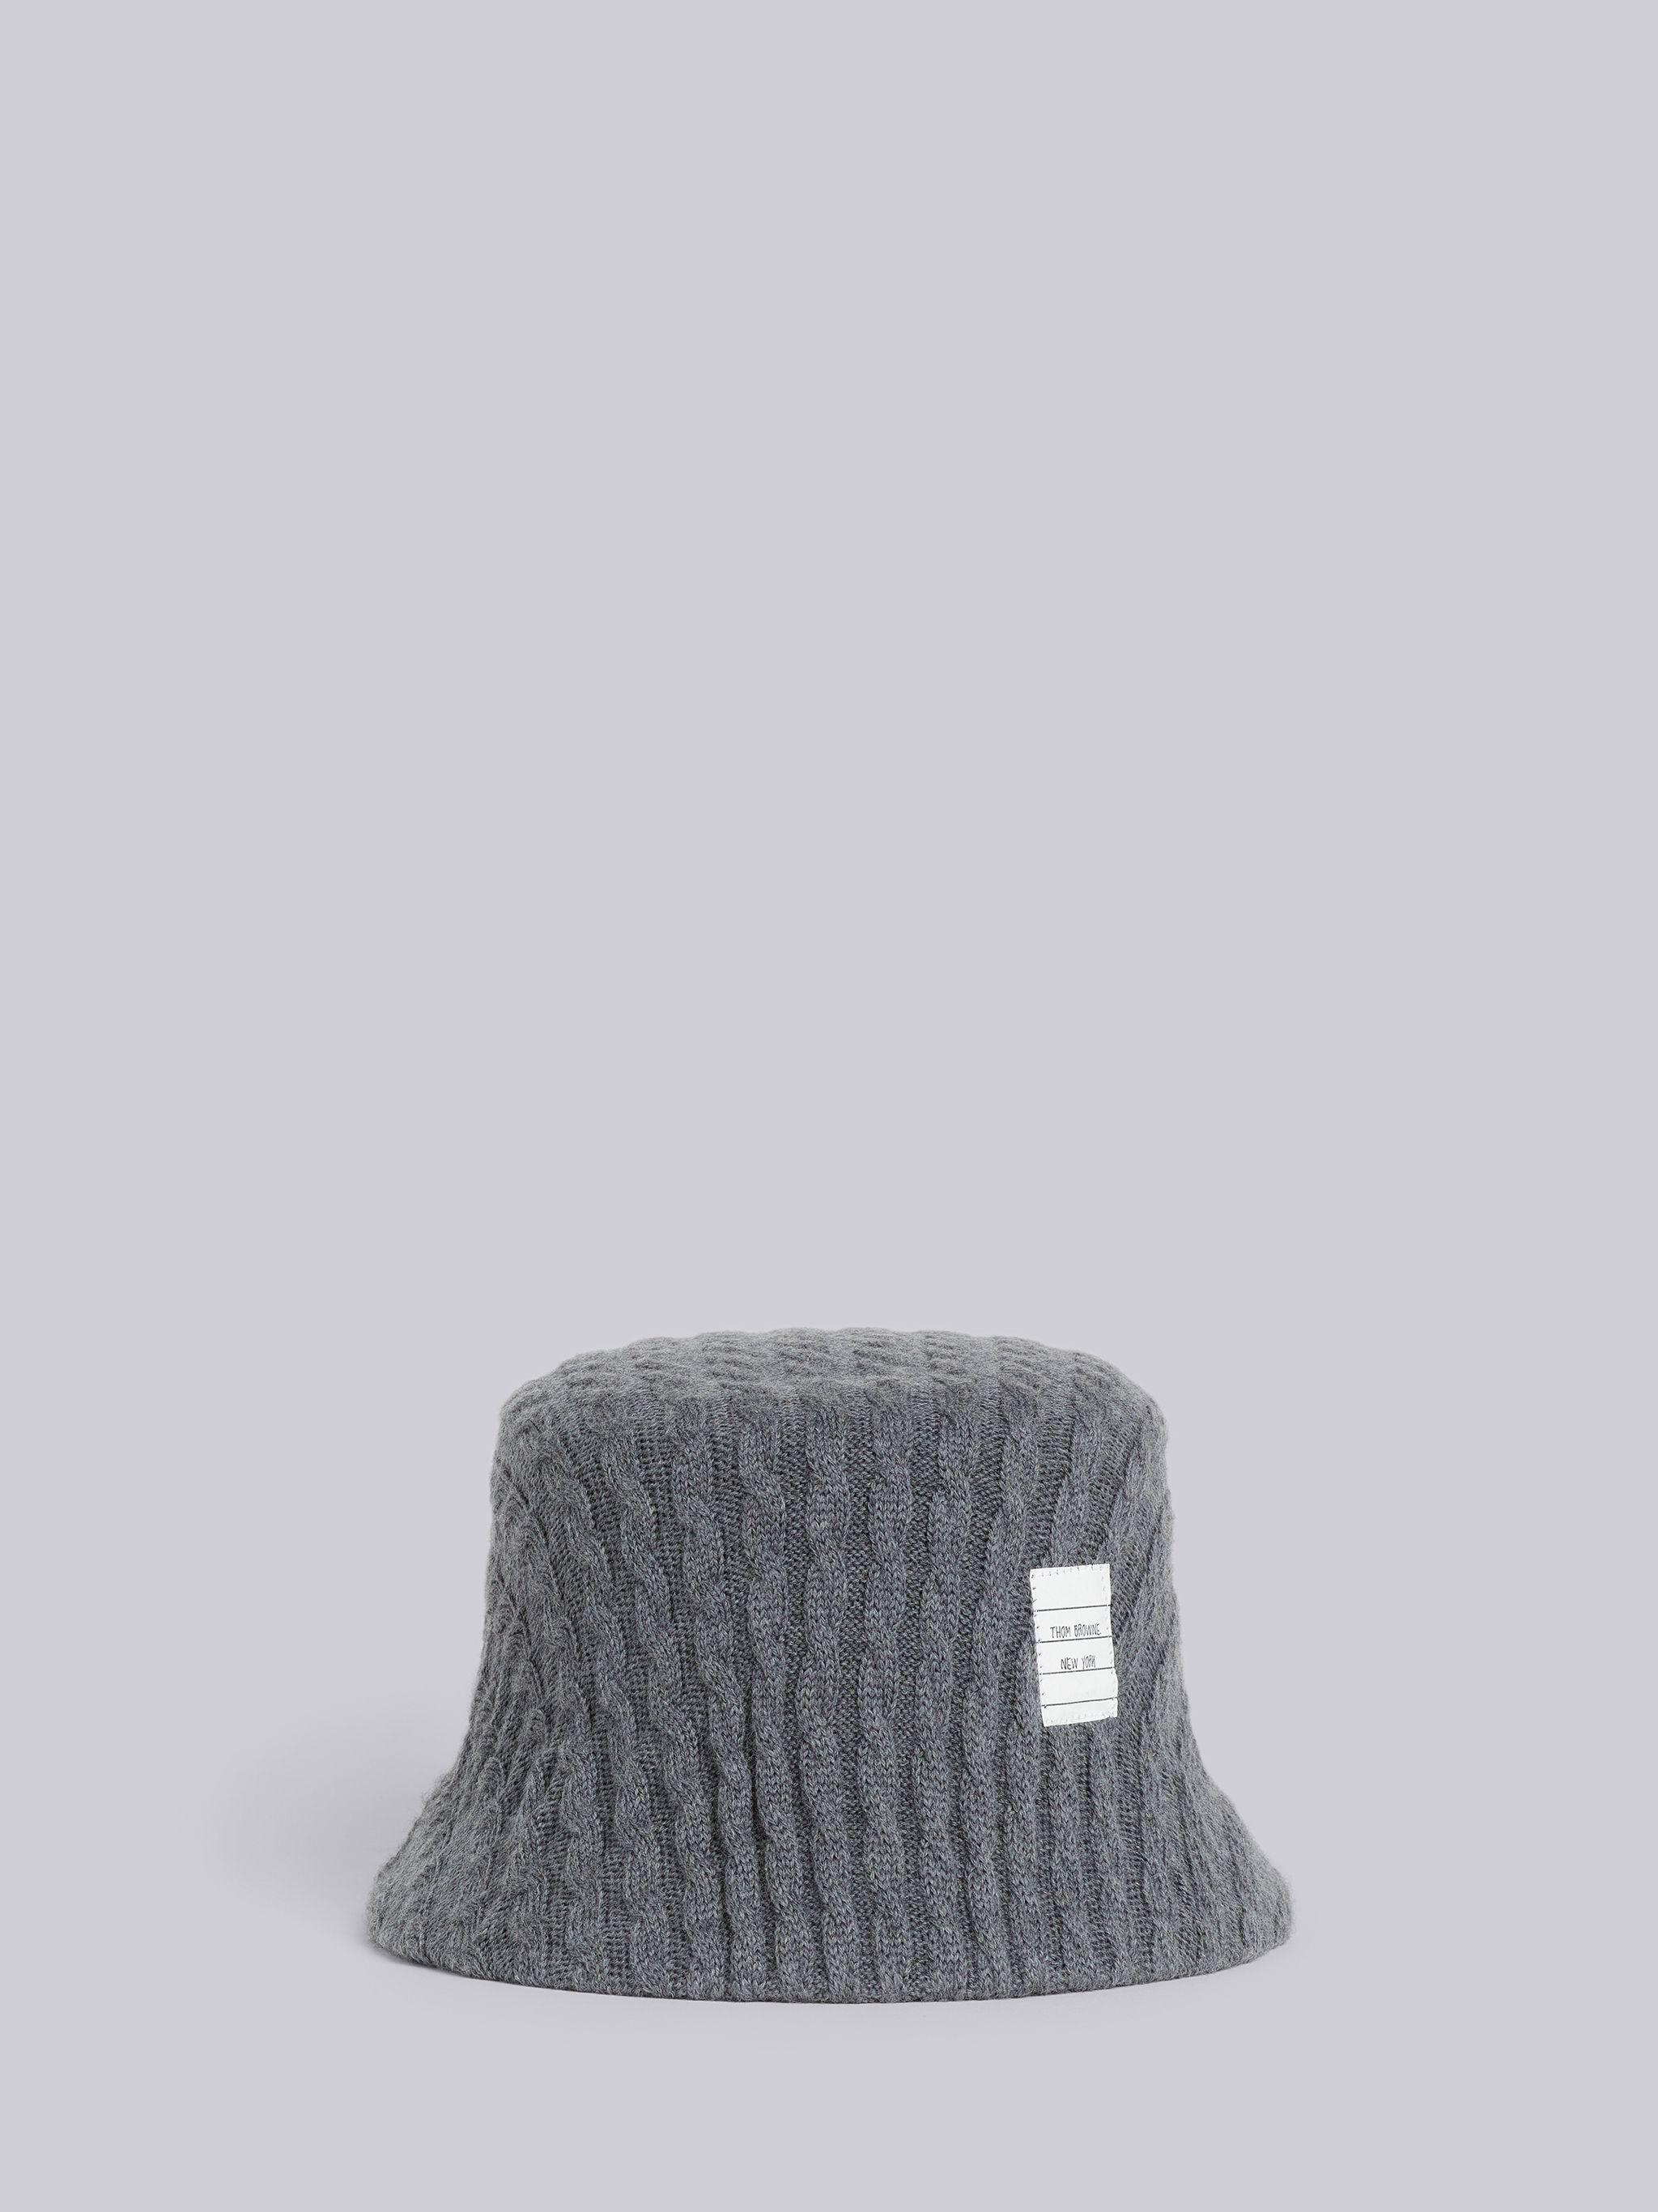 Medium Grey Baby Cable Knit Seamless Bucket Hat